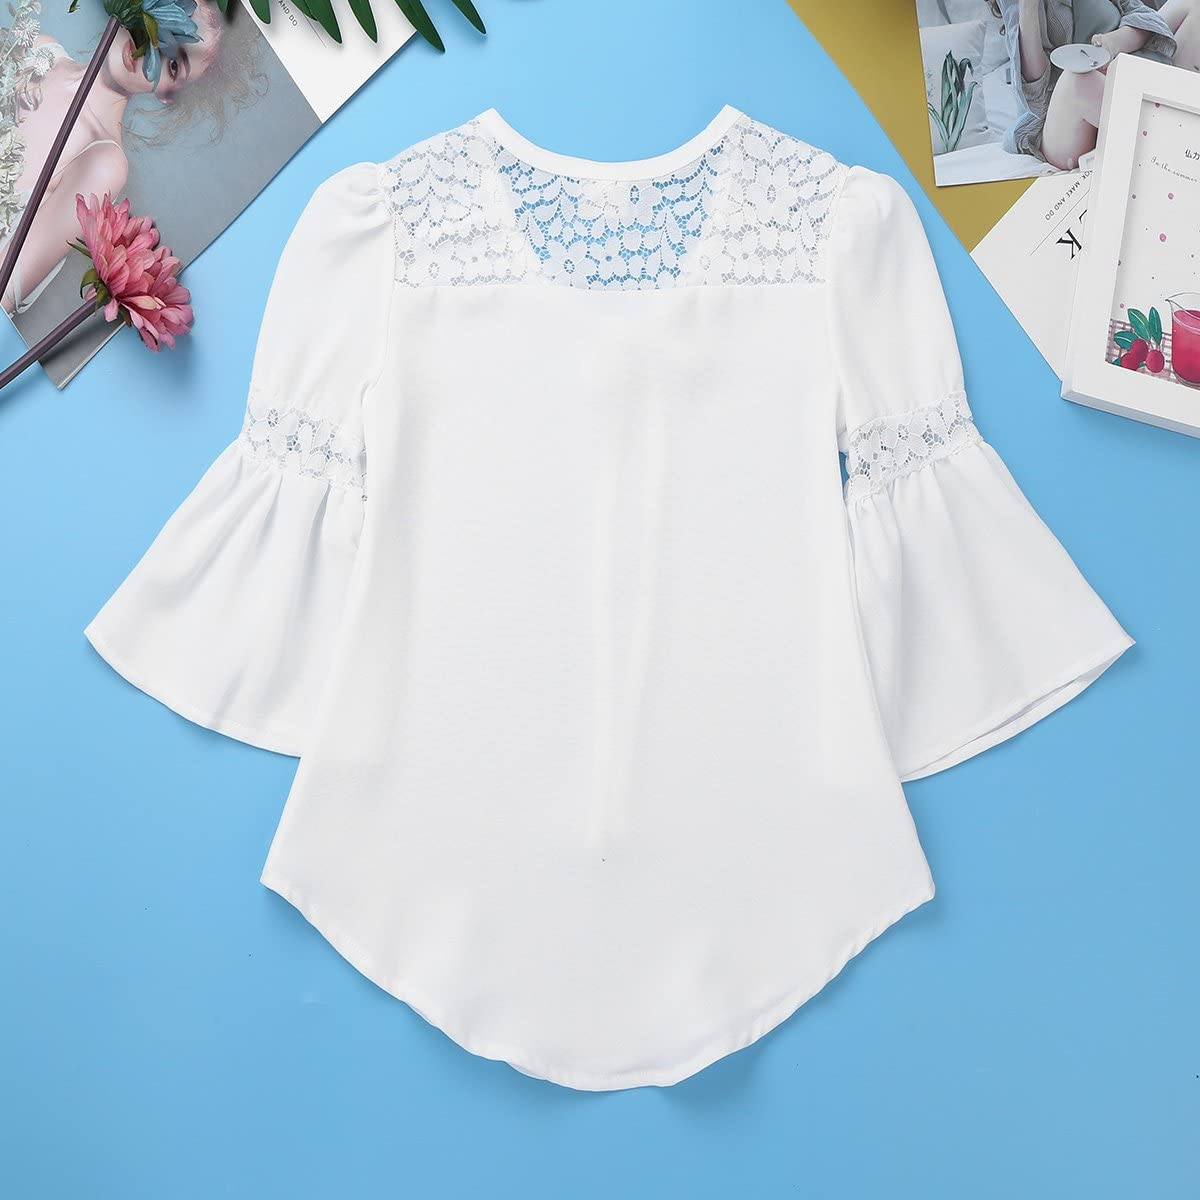 inhzoy Kids Girls 3//4 Bell Sleeves Lace Splice Top Loose White Blouse with Tie-Front Casual Spring Autumn Shirt